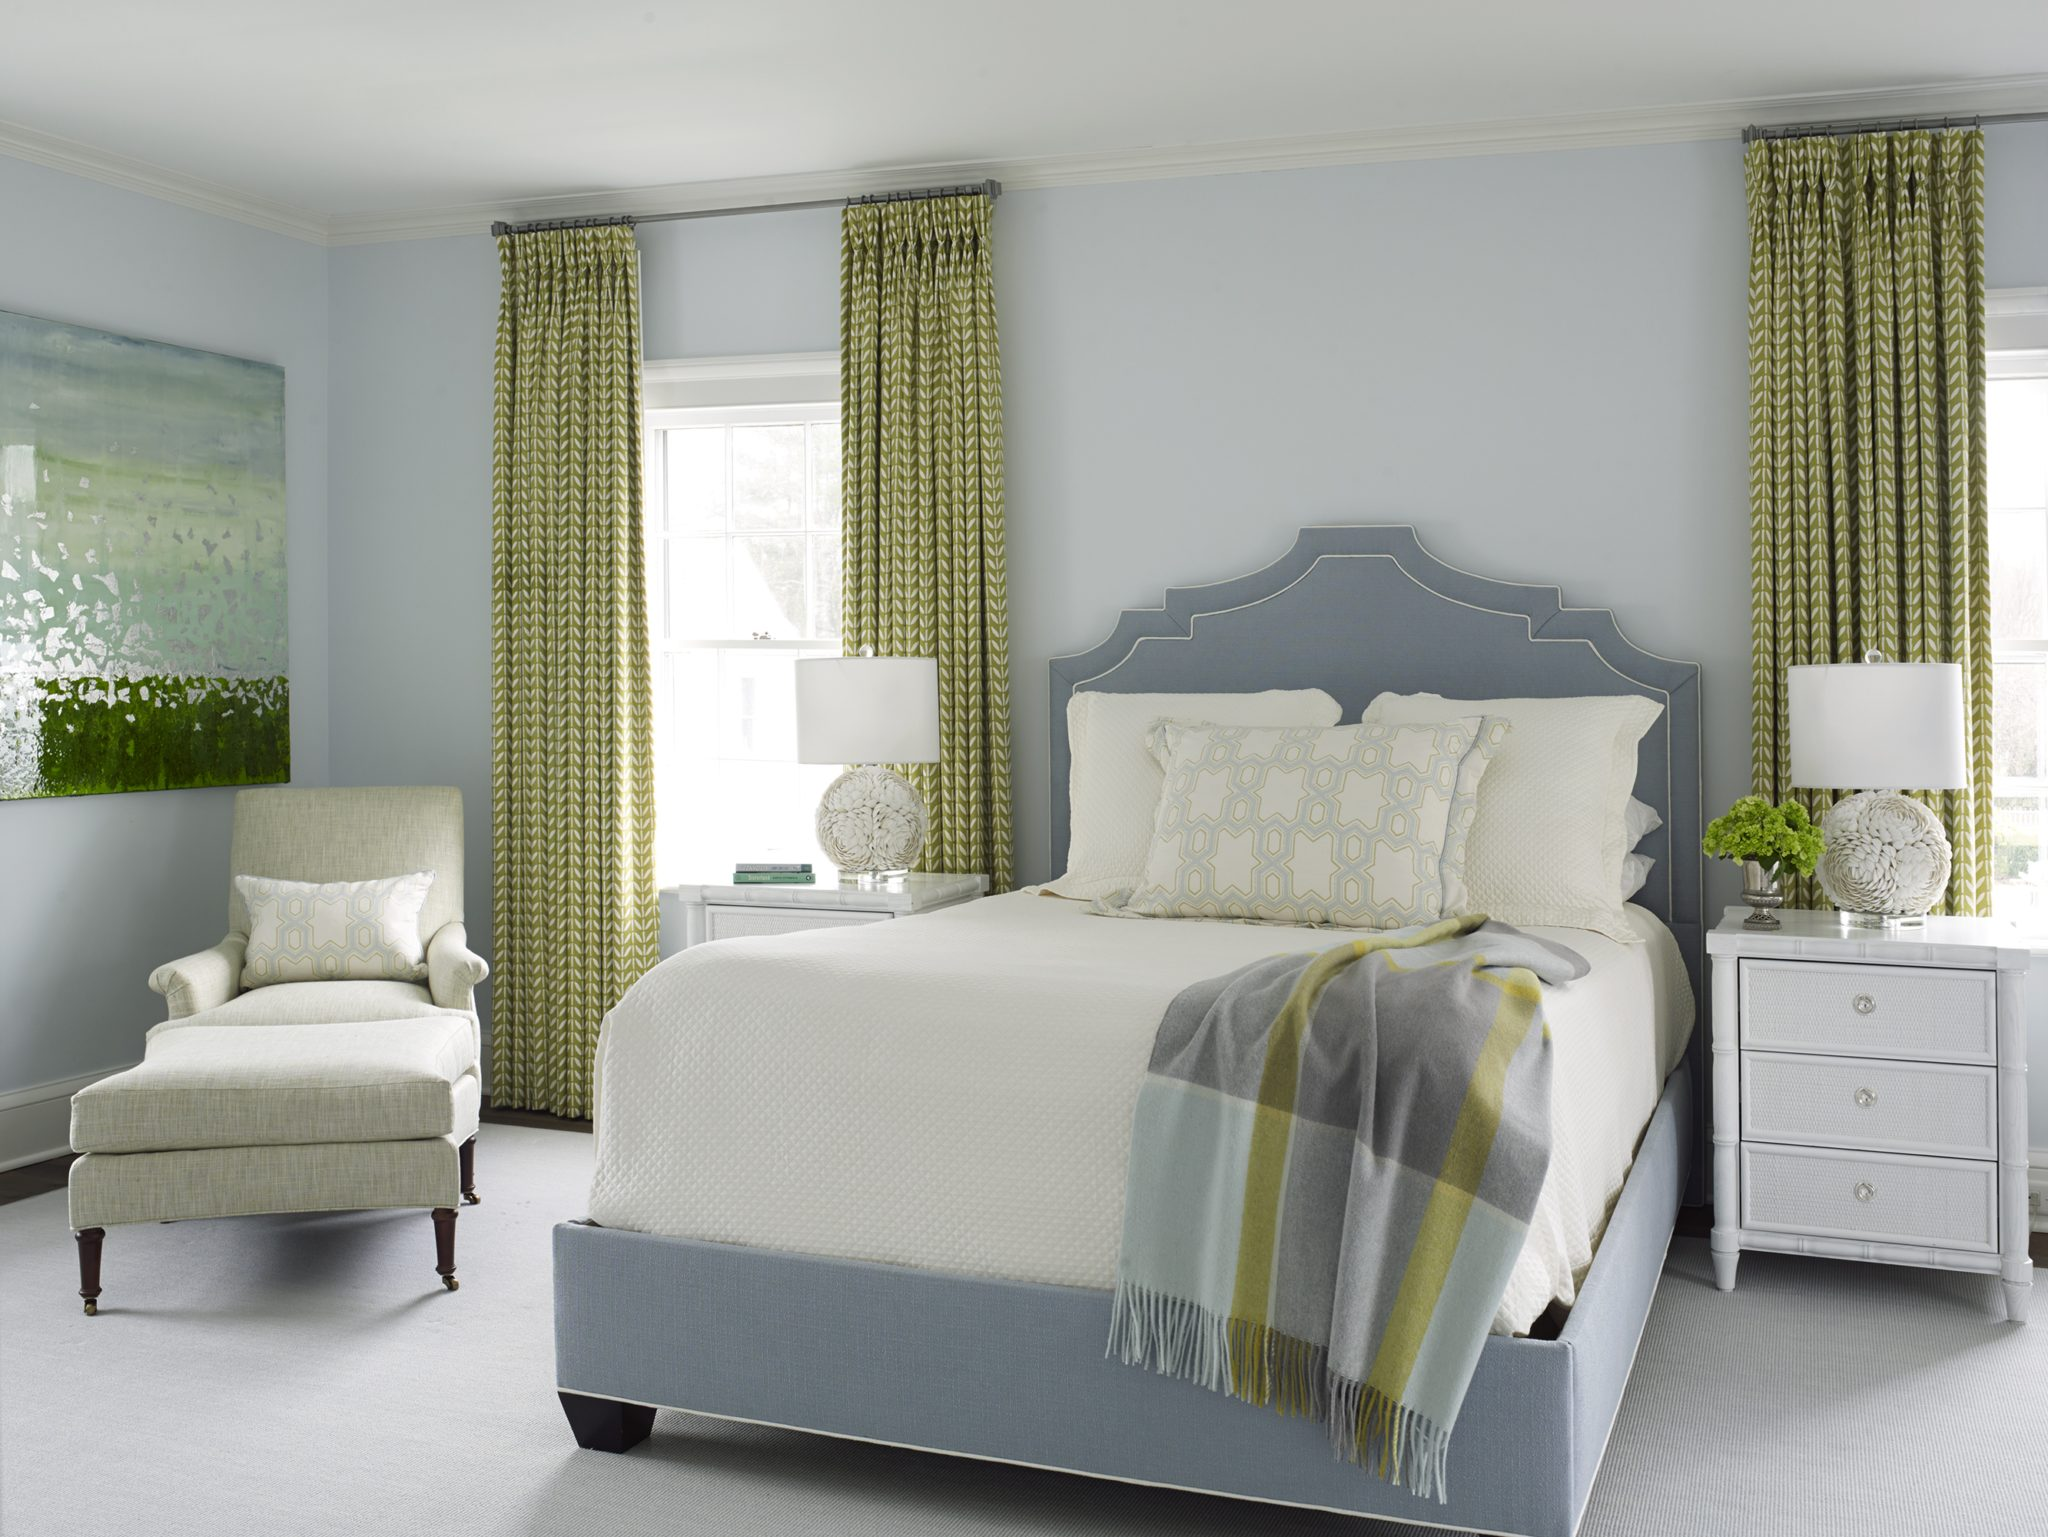 Southport Bedroom in Soothing Blues and Greens by Ken Gemes Interiors